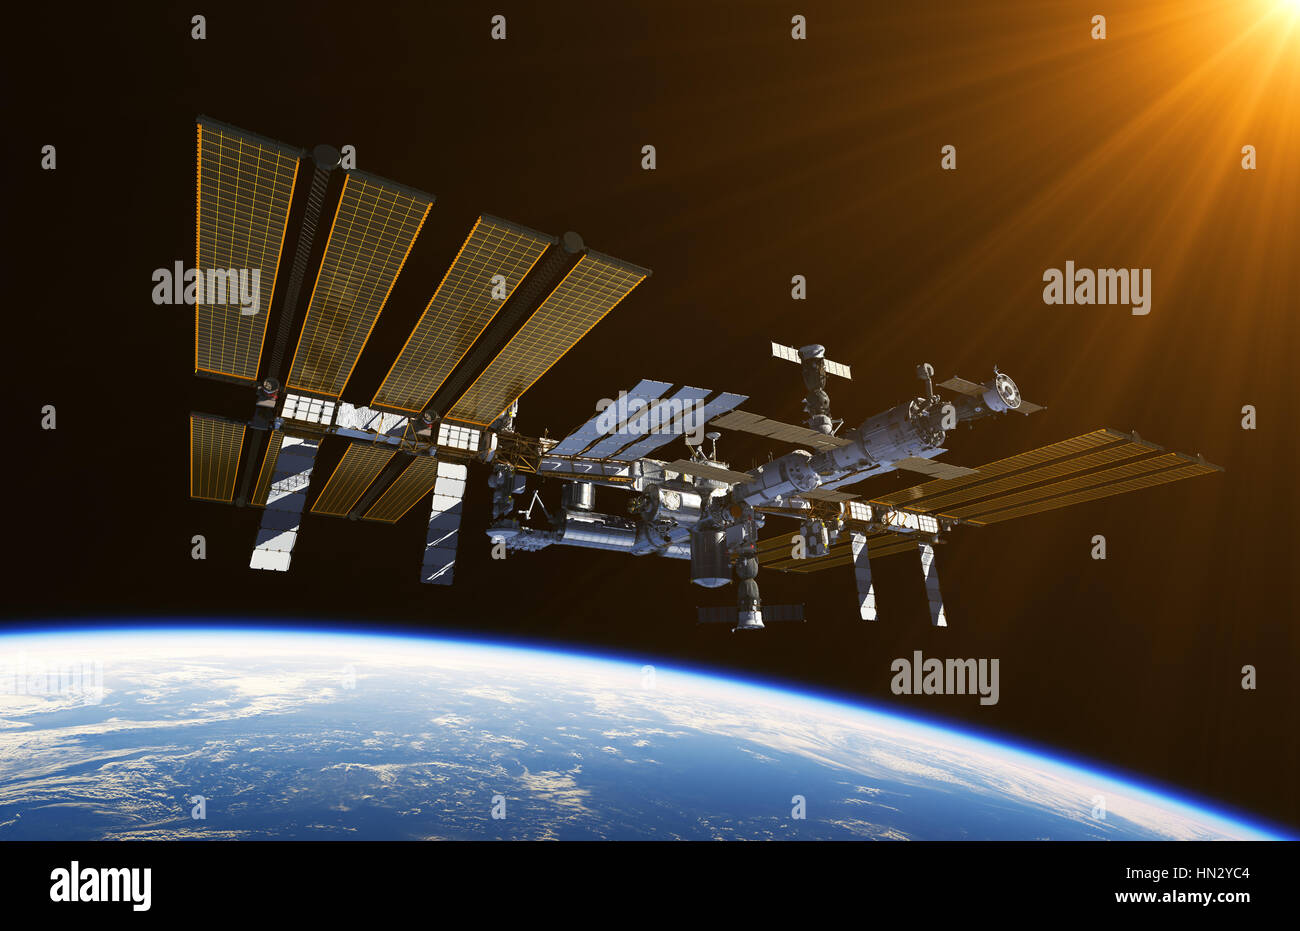 International Space Station In Outer Space - Stock Image